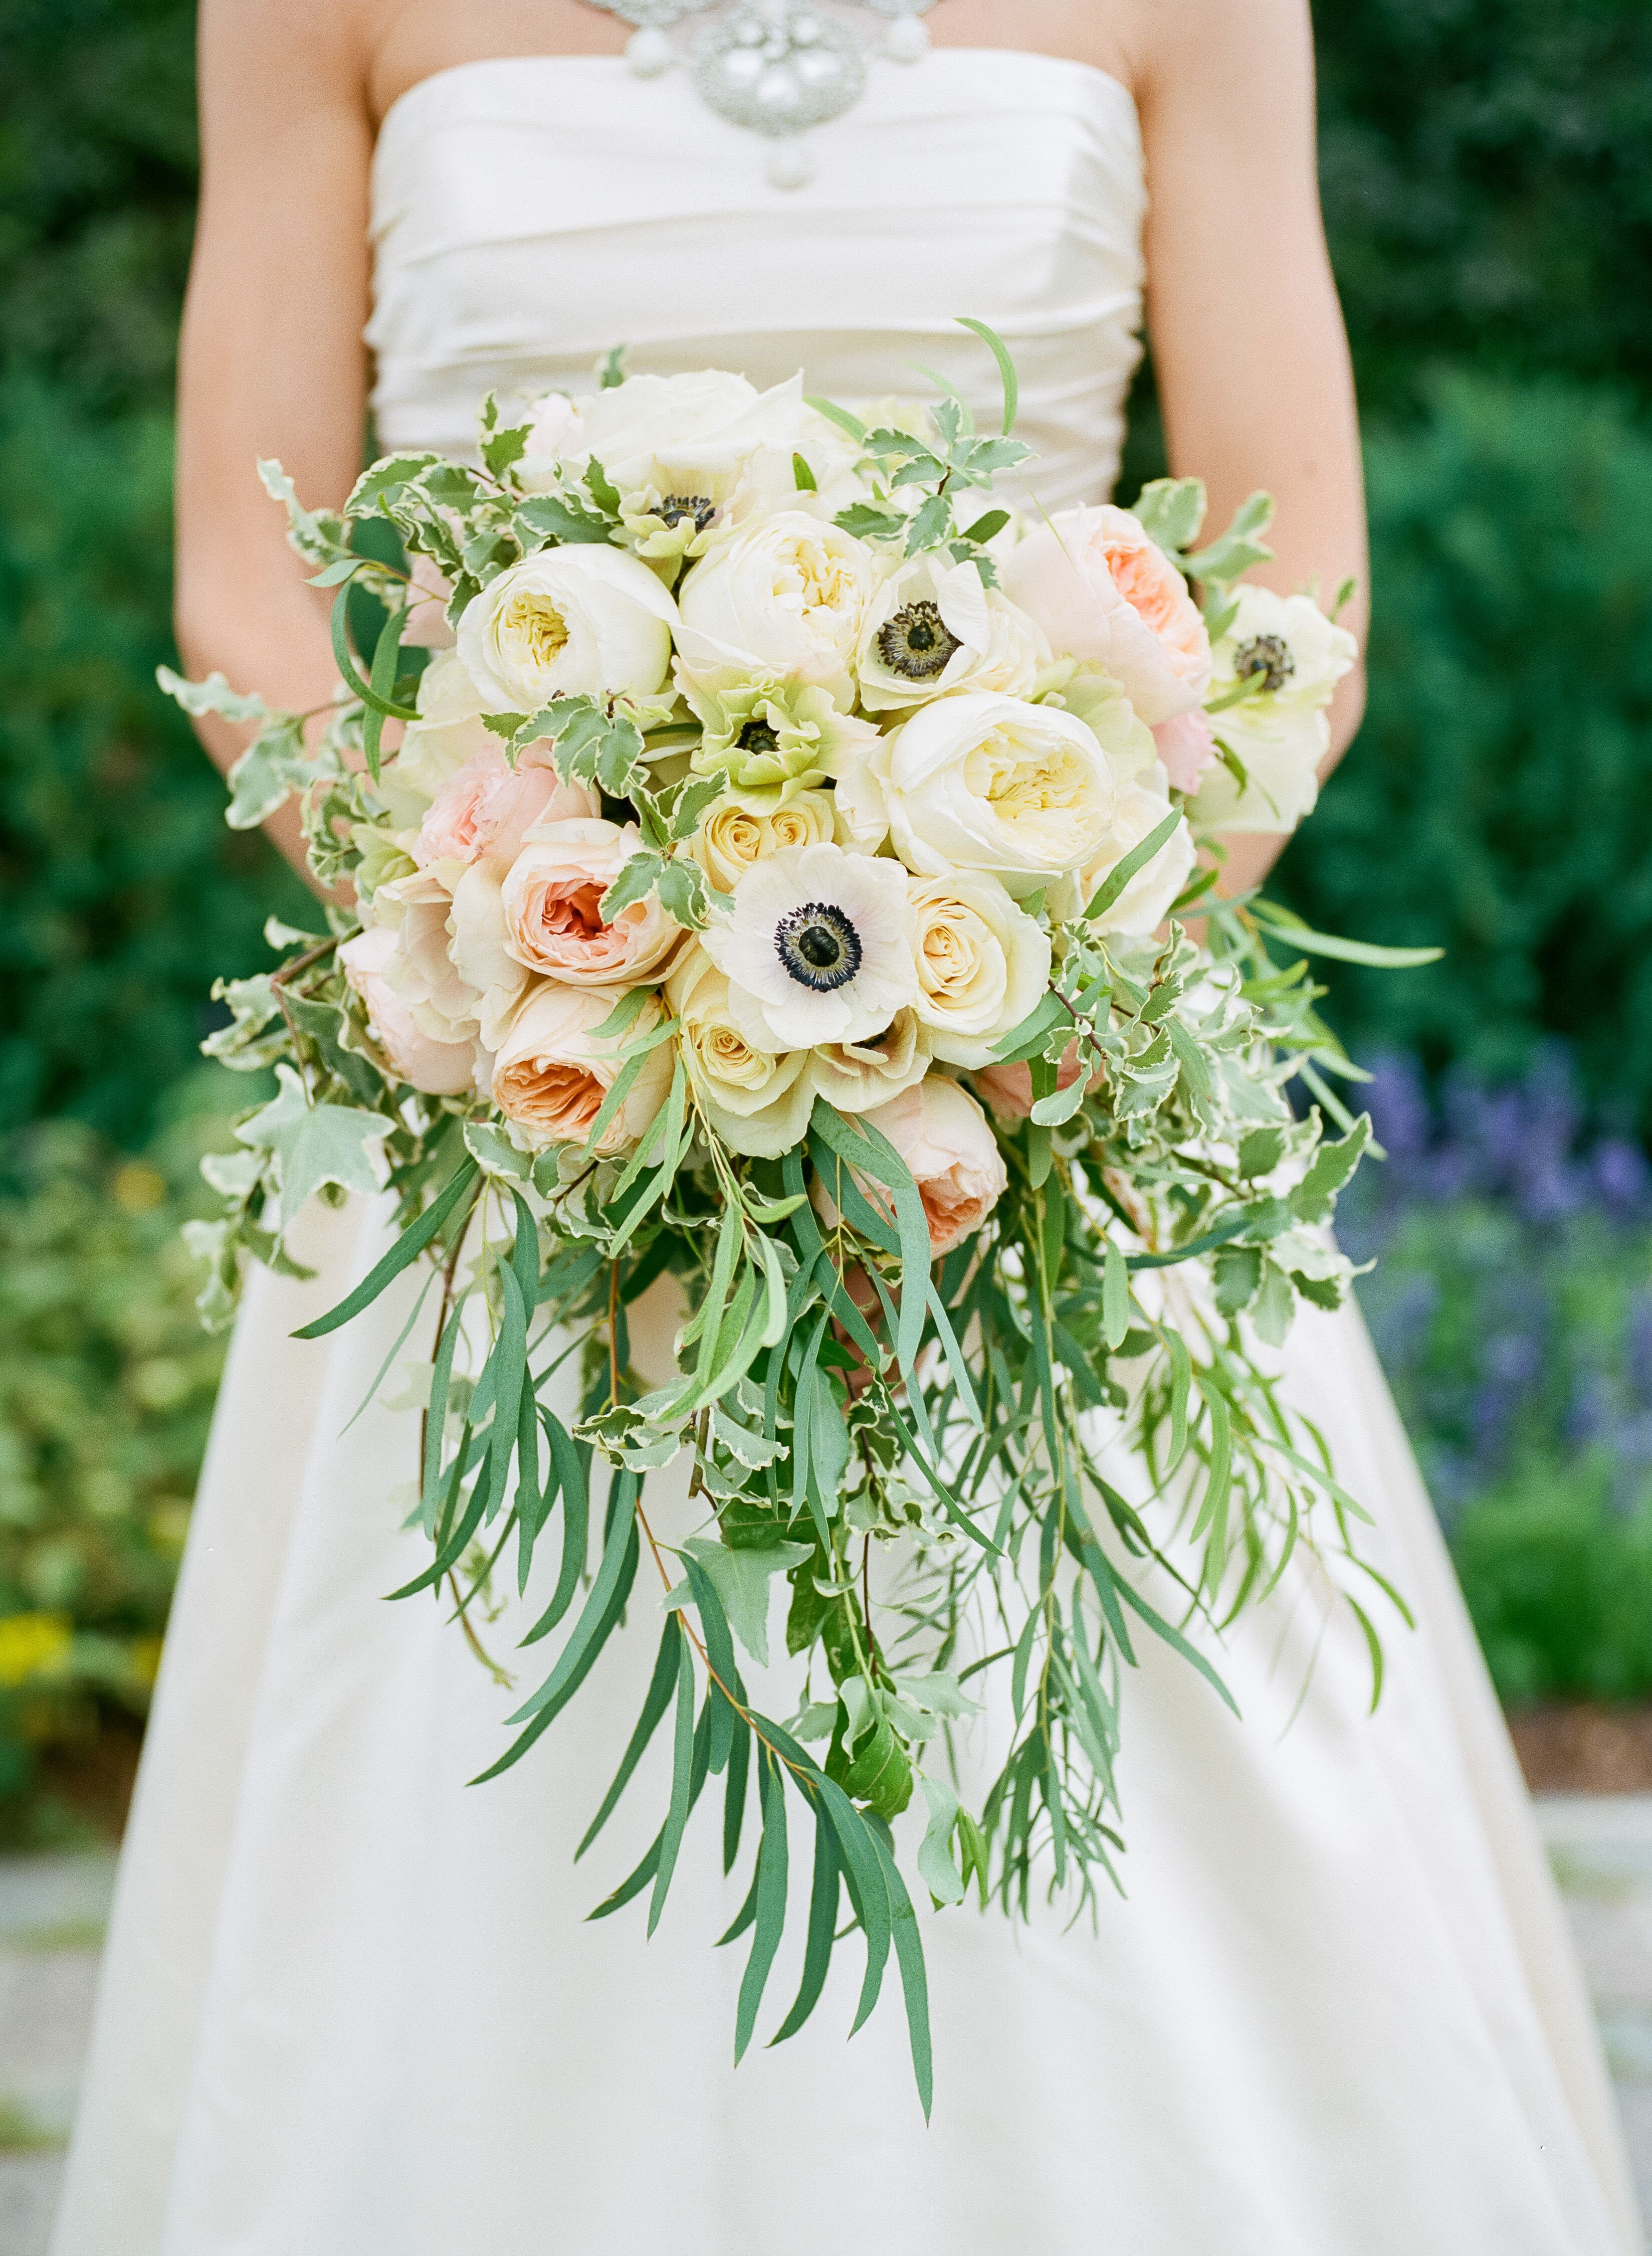 Romantic Cascading Ivory Blush Bridal Bouquet With Greens